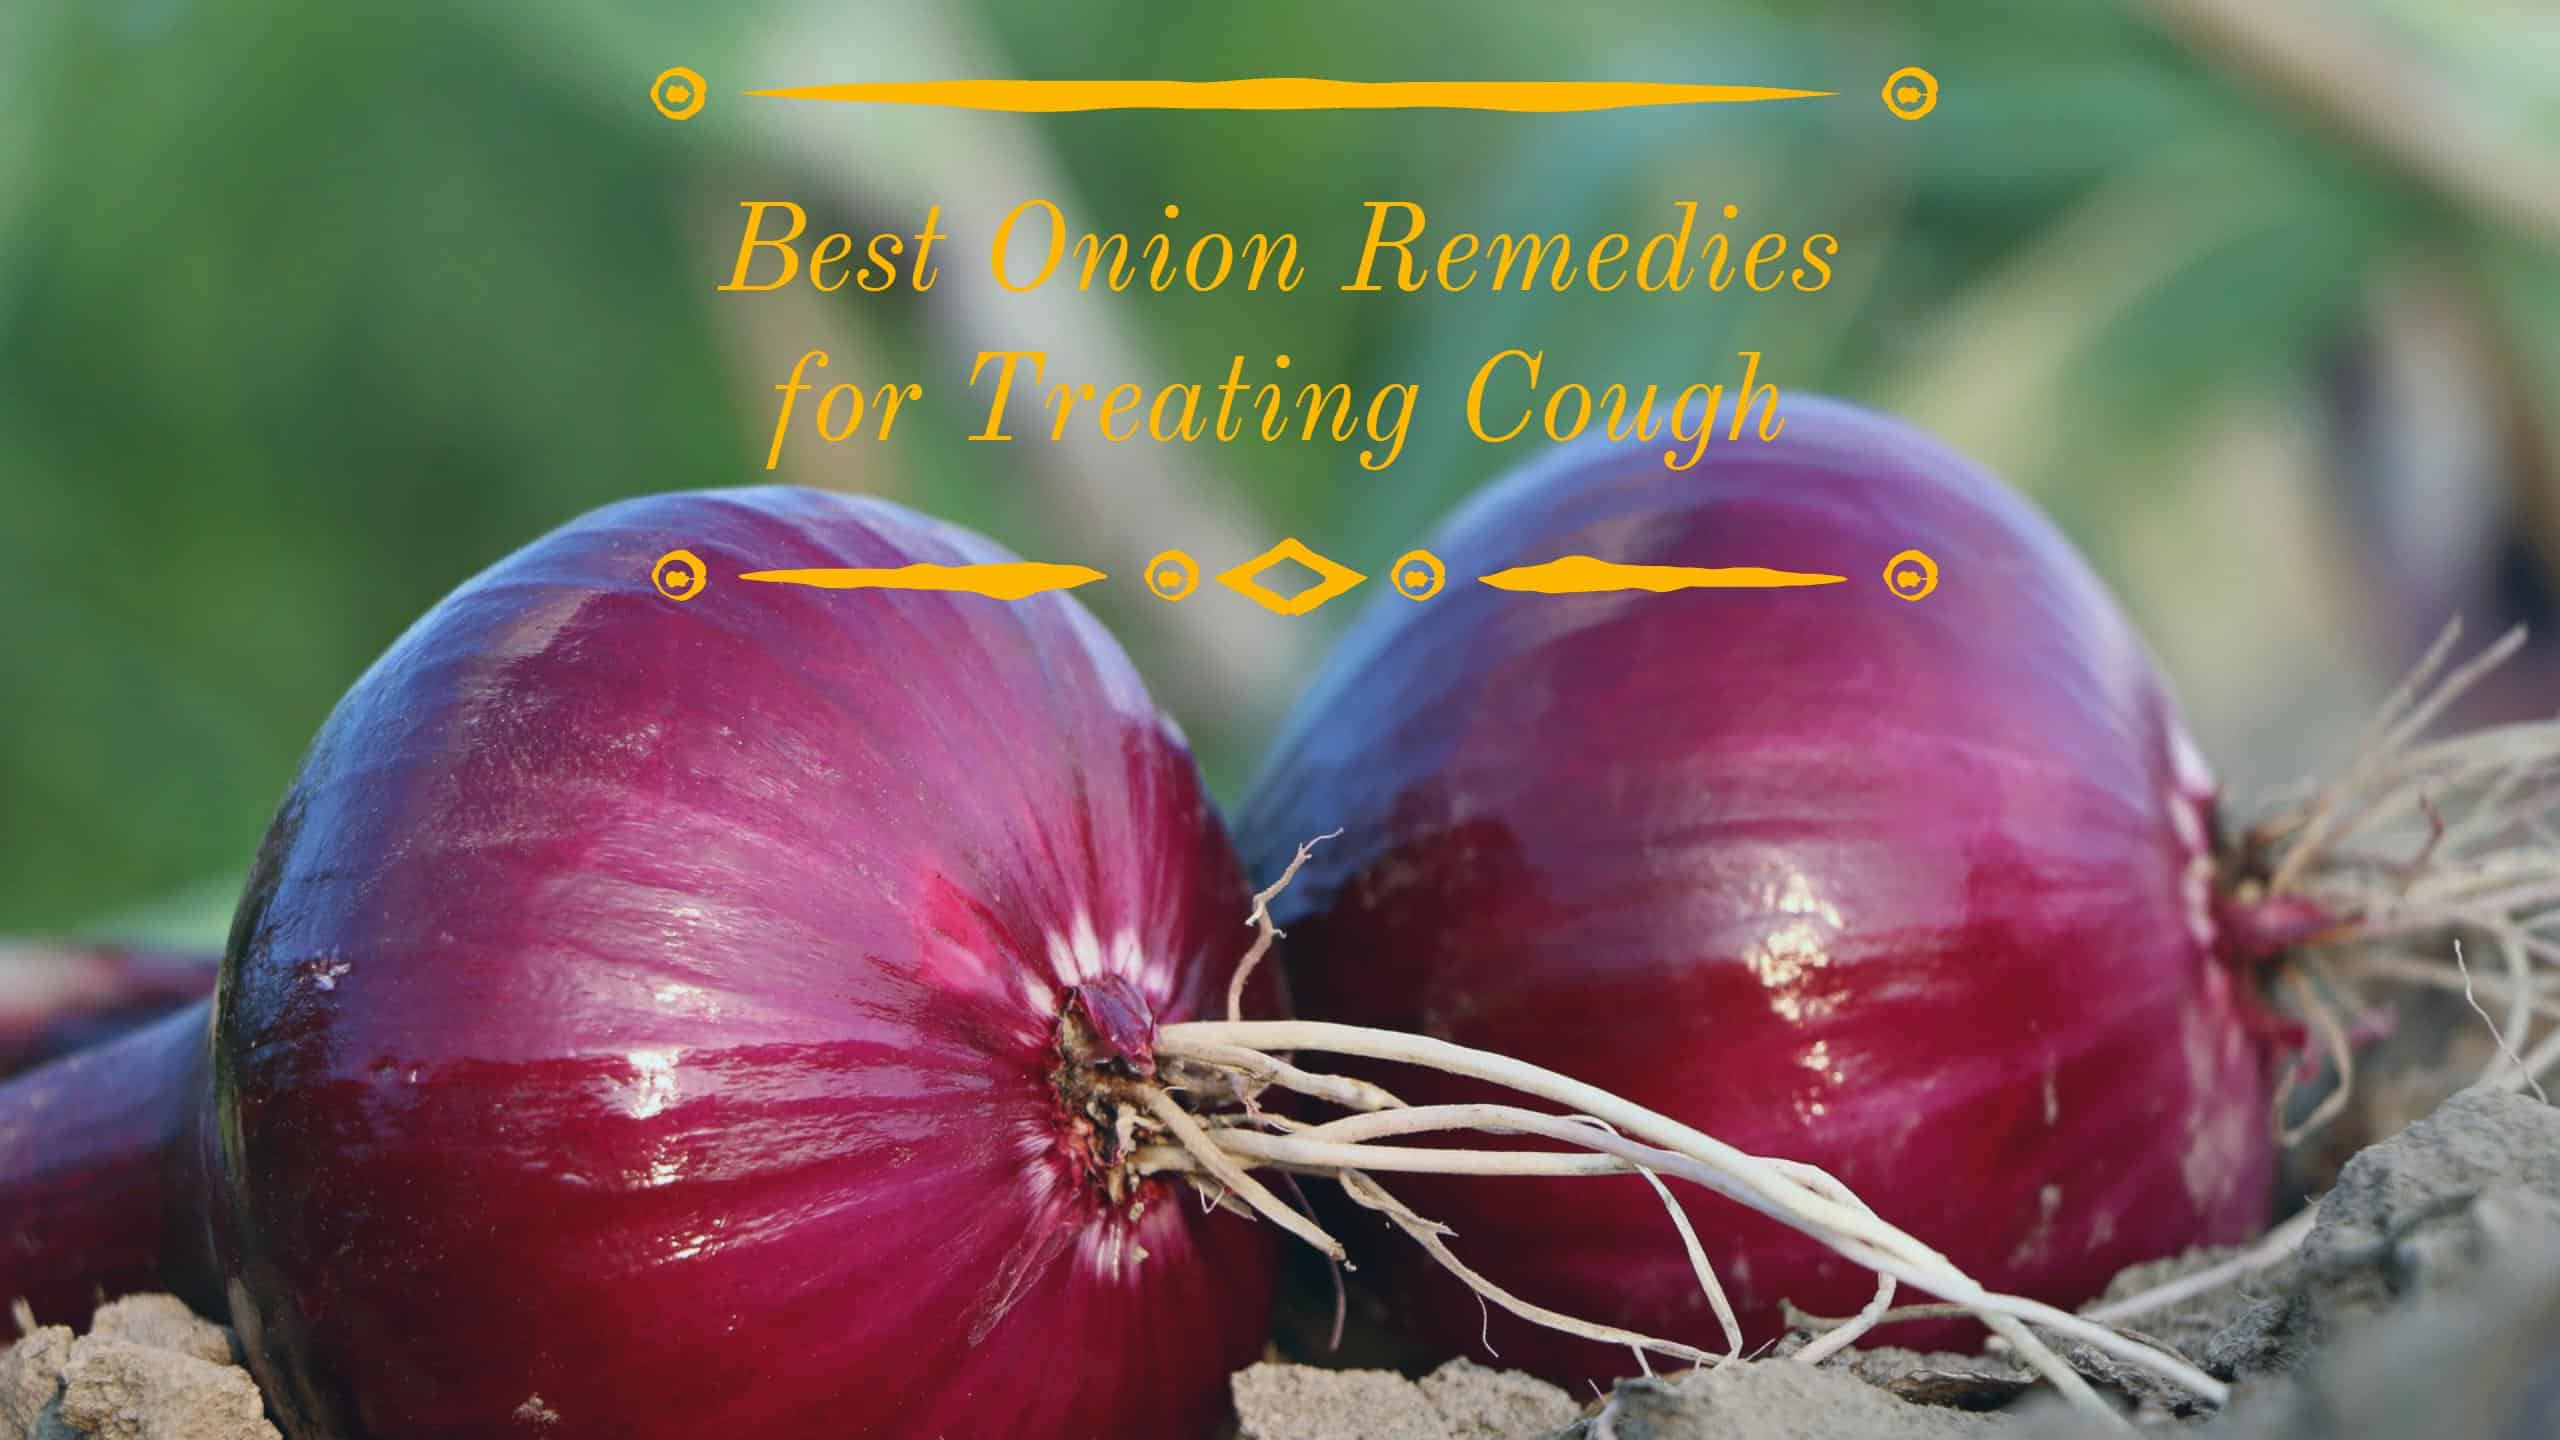 3 best onion remedies for treating cough ccuart Gallery